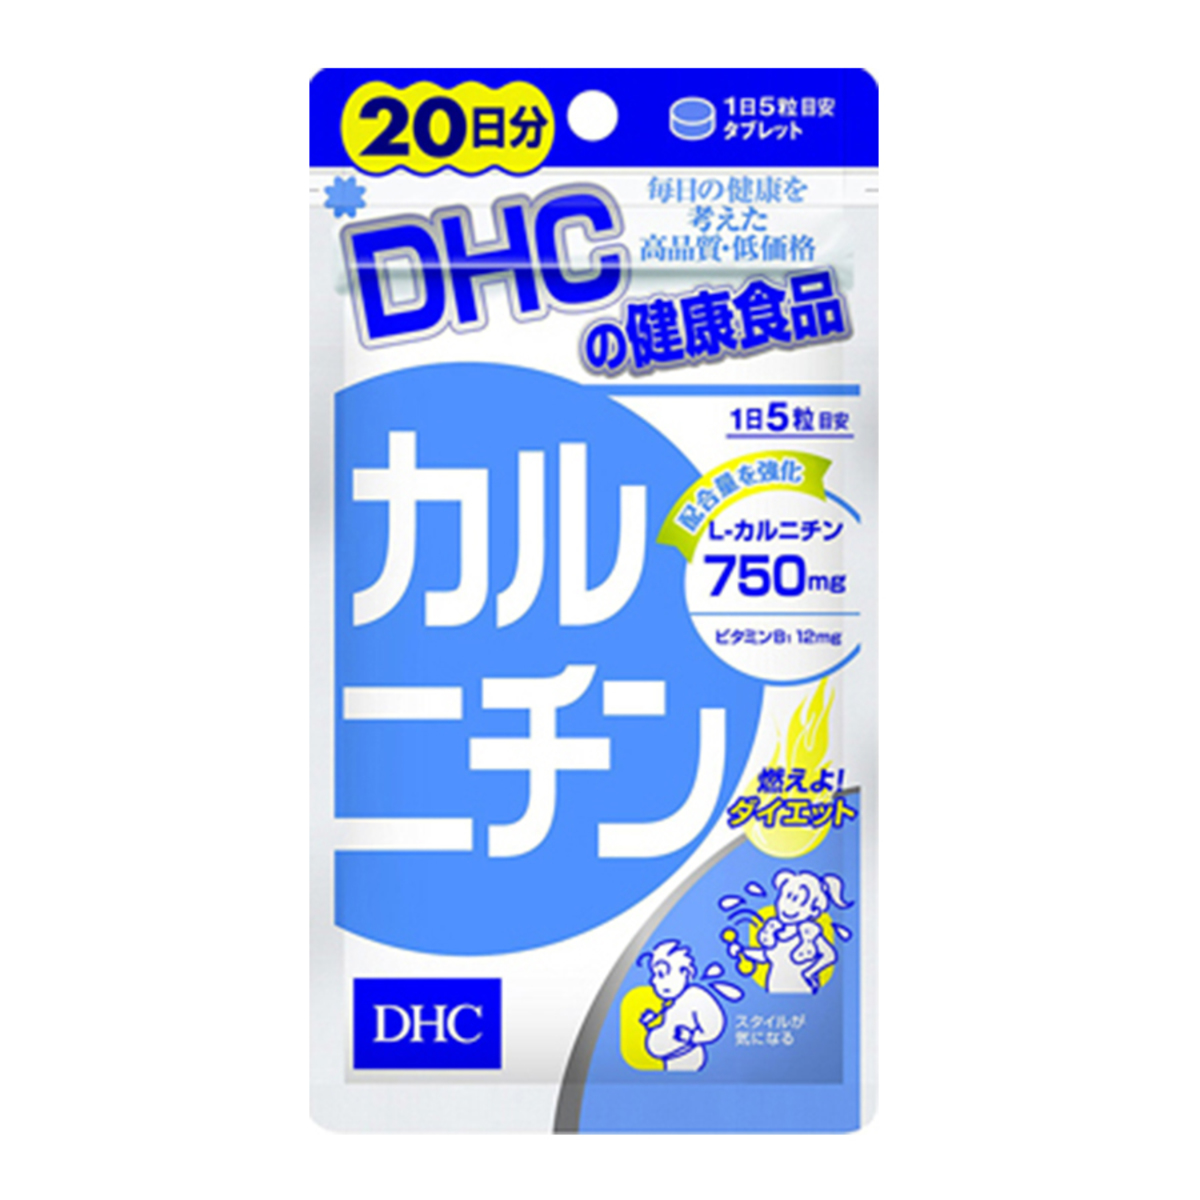 DHC CARNITINE supplement 20-days